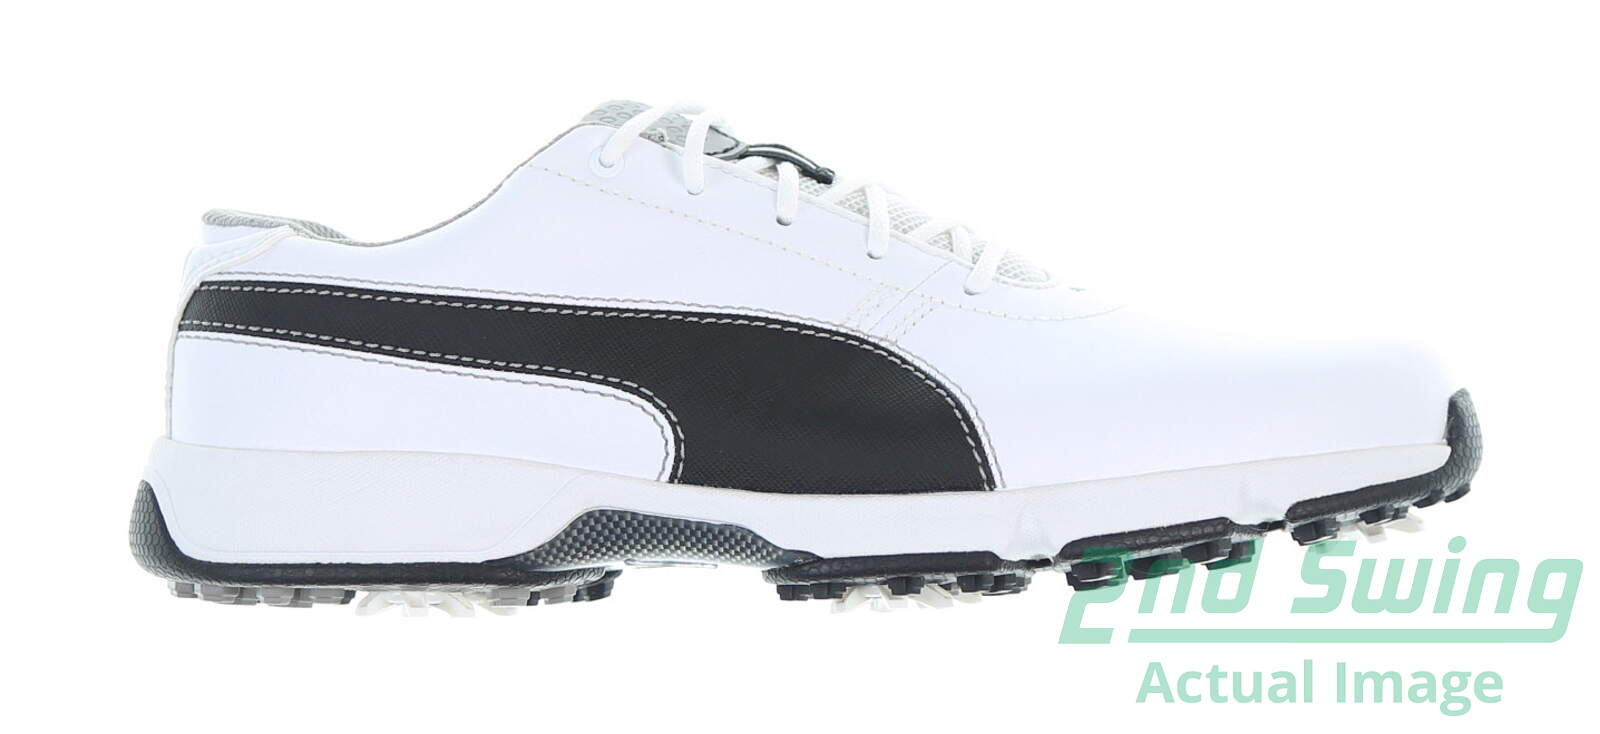 New Mens Golf Shoe Puma IGNITE Drive 9 WhiteBlack 189166 04